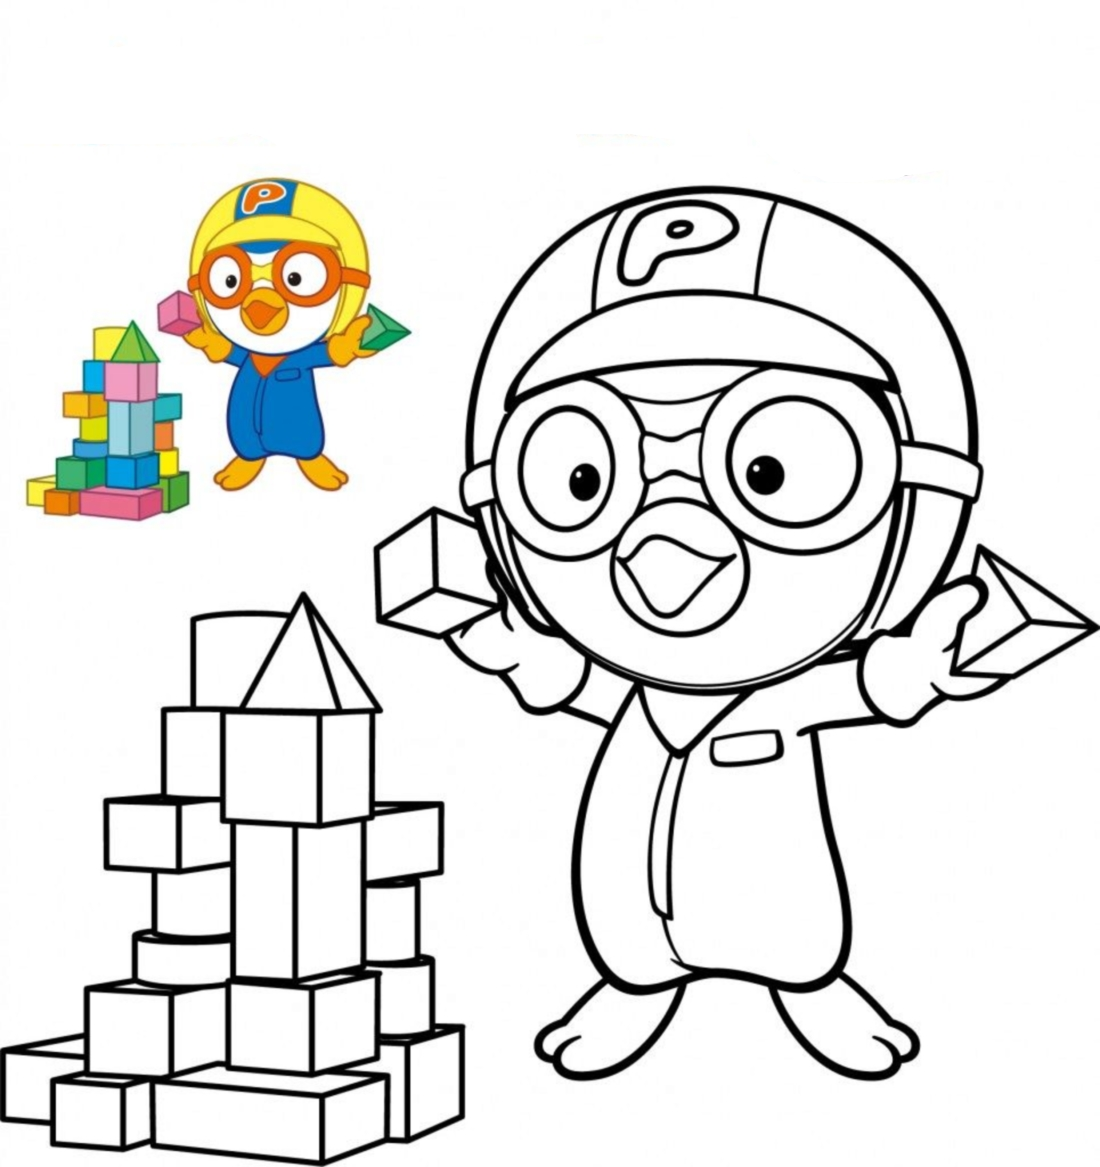 coloring book pages com - photo#29